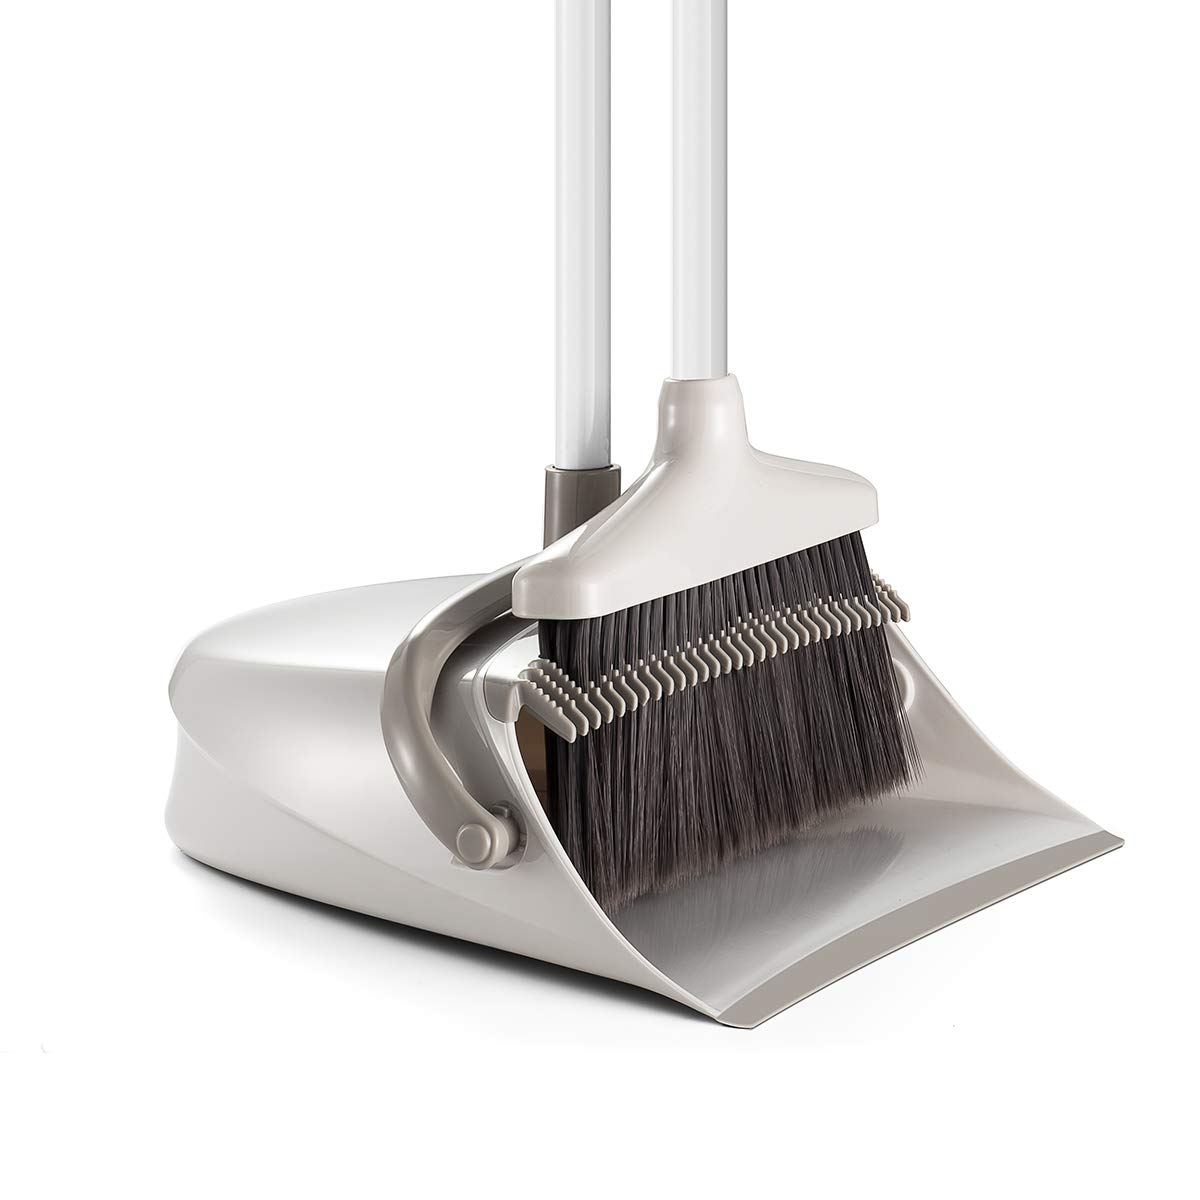 Broom and Dustpan Set, CQT Dust Pan and Broom with Long Handle for Home Kitchen Industry Lobby Floor Sweeping Upright Stand Up Dustpan Cleans Broom Combo by CQT (Image #1)